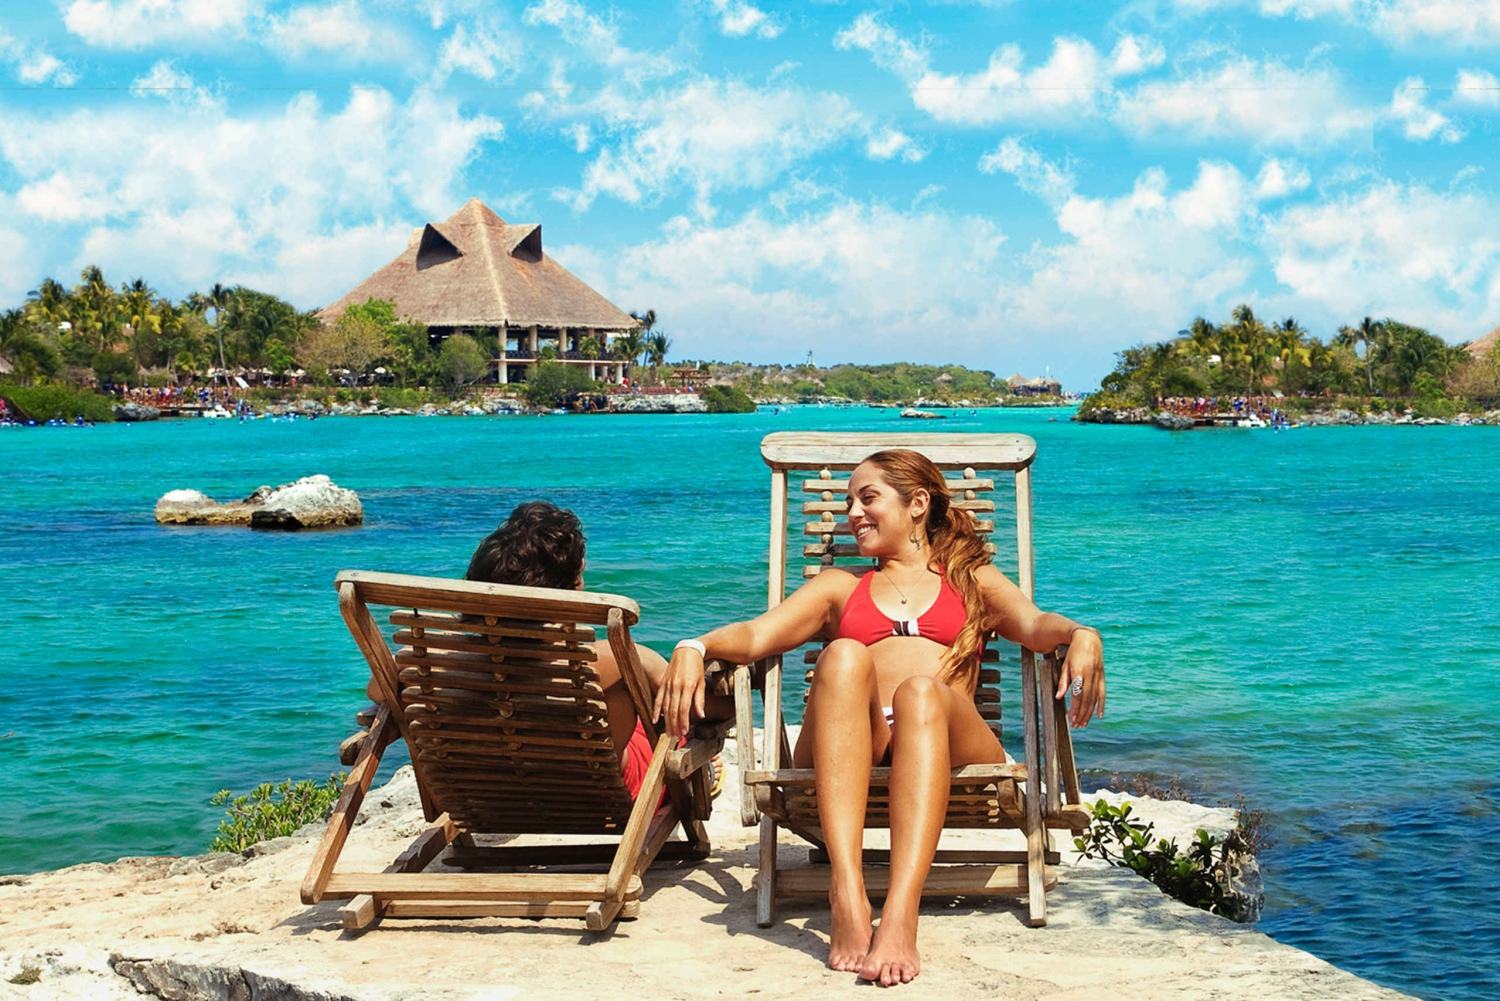 Xel-Há Park: All-Inclusive Day Ticket from Riviera Maya